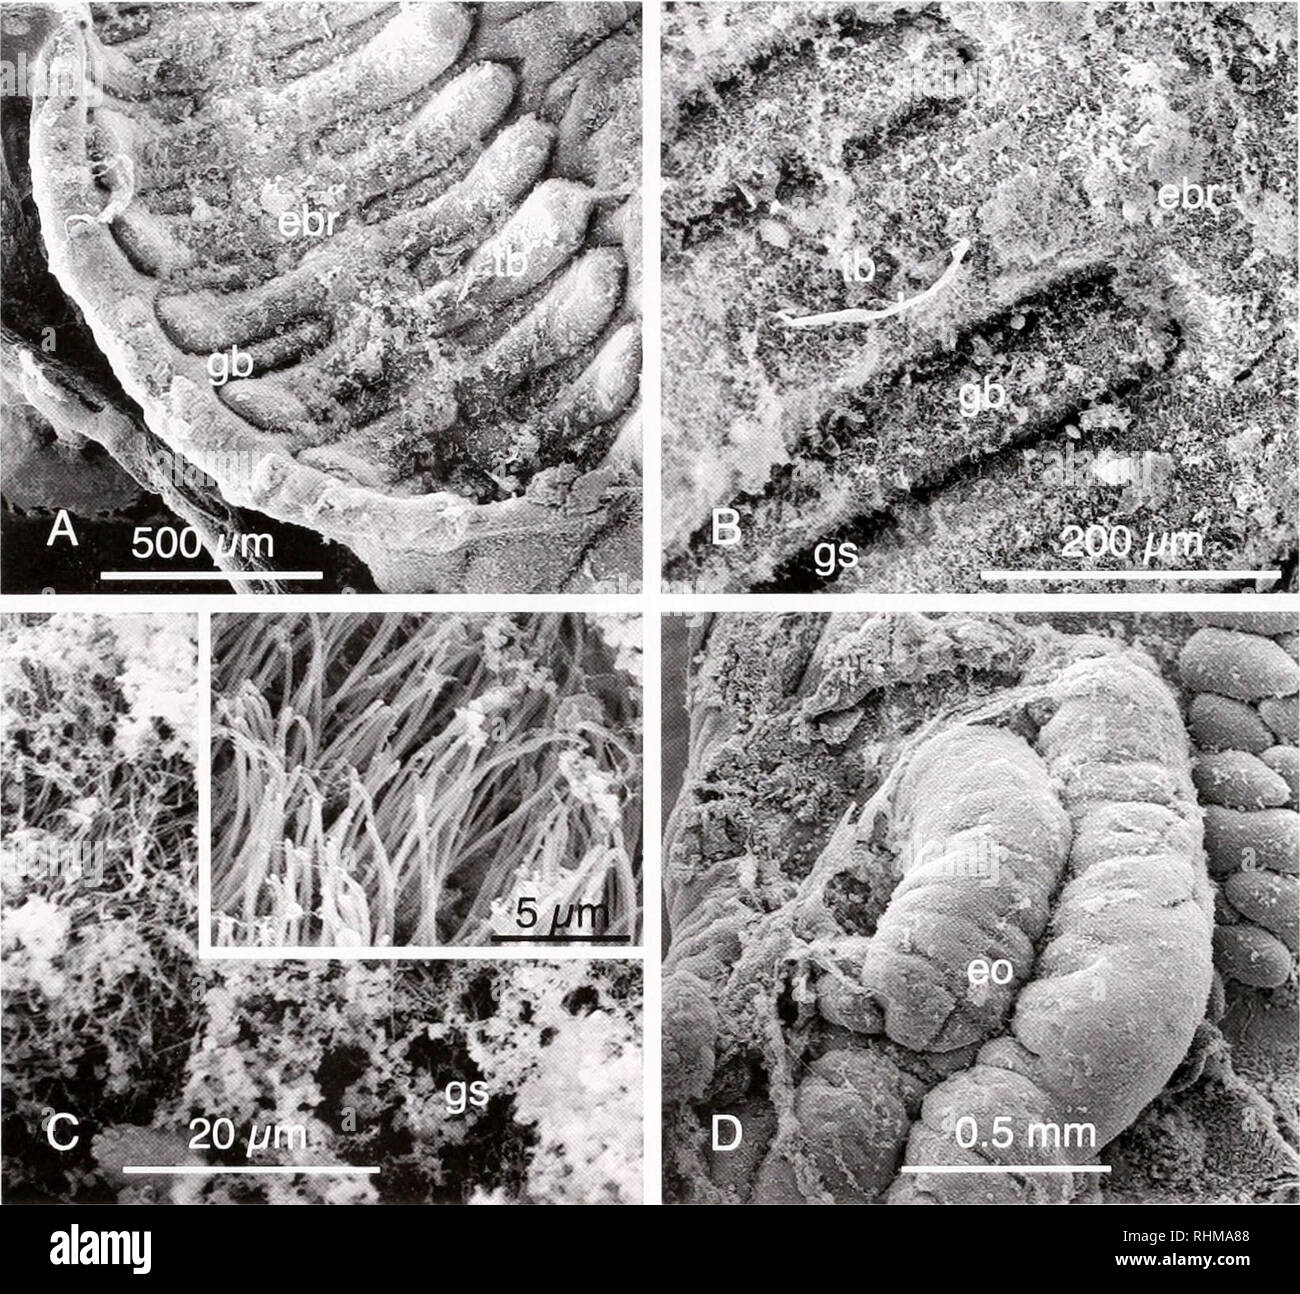 . The Biological bulletin. Biology; Zoology; Biology; Marine Biology. 194 C. B. CAMERON '. - *ifi. y ( •^.-'-^-.,'artX. Figure 1. Scanning electron microscope images of sectii me J m.iiL-nal ol Harrimania planktophilus, I A) The dorsal branchial pharynx, showing the primary bars, tongue bars, and gill slits. (B) The gill bars and slits in the dorsal branchial pharynx. (C) Cilia and mucus on a gill bar. (C inset) High-magnification image of cilia on a tongue bar. (D) The esophageal organ concentrates food in passage from the pharynx to the hepatic region of the gut. ebr. epibranchial region; e - Stock Image